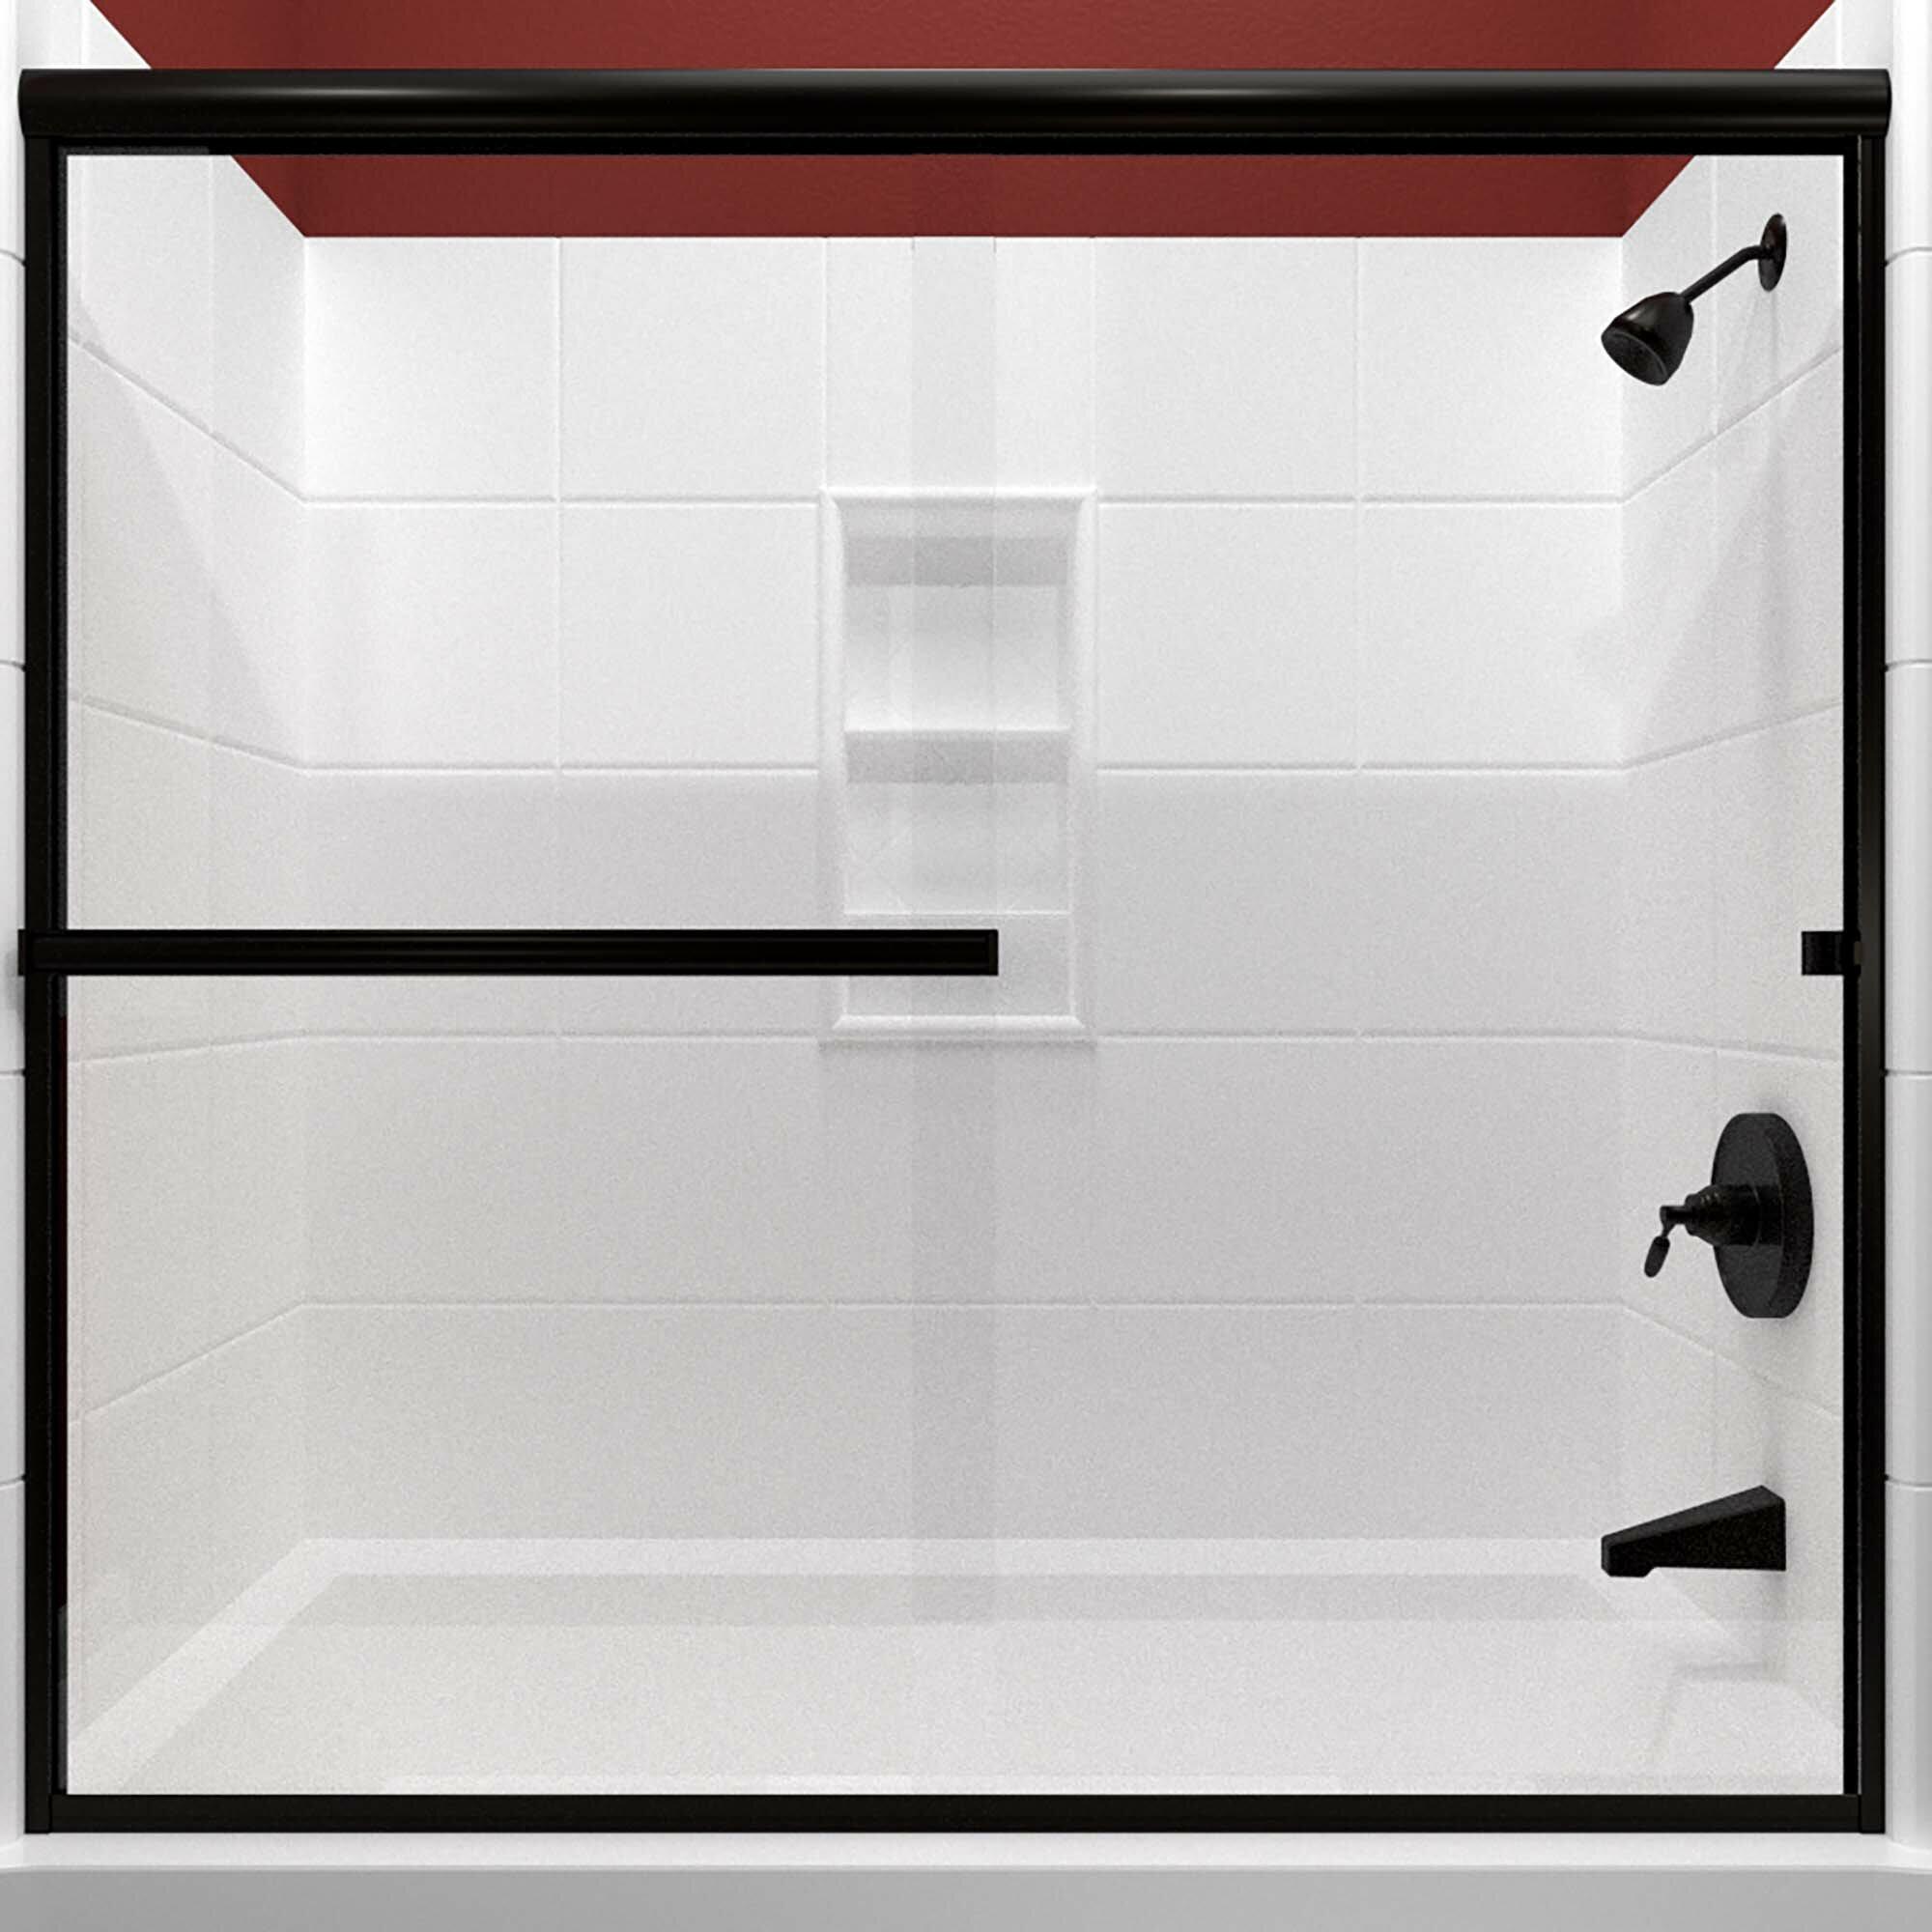 Details About Lete 66 X 57 38 Bypass Semi Frameless Tub Door Anodized Oil Rubbed Bronze